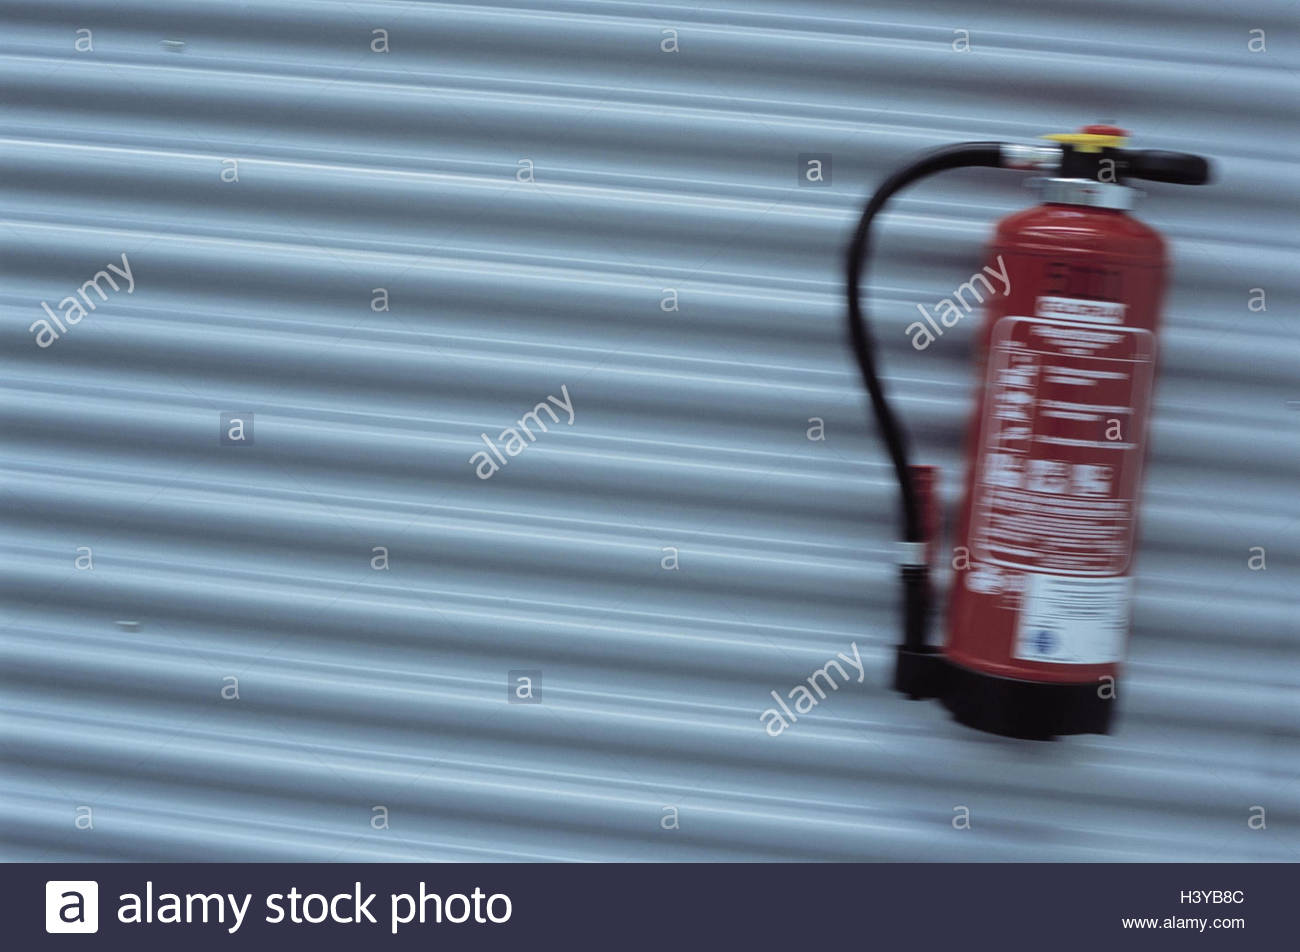 Fire Extinguisher Wall Stock Photos & Fire Extinguisher Wall Stock ...